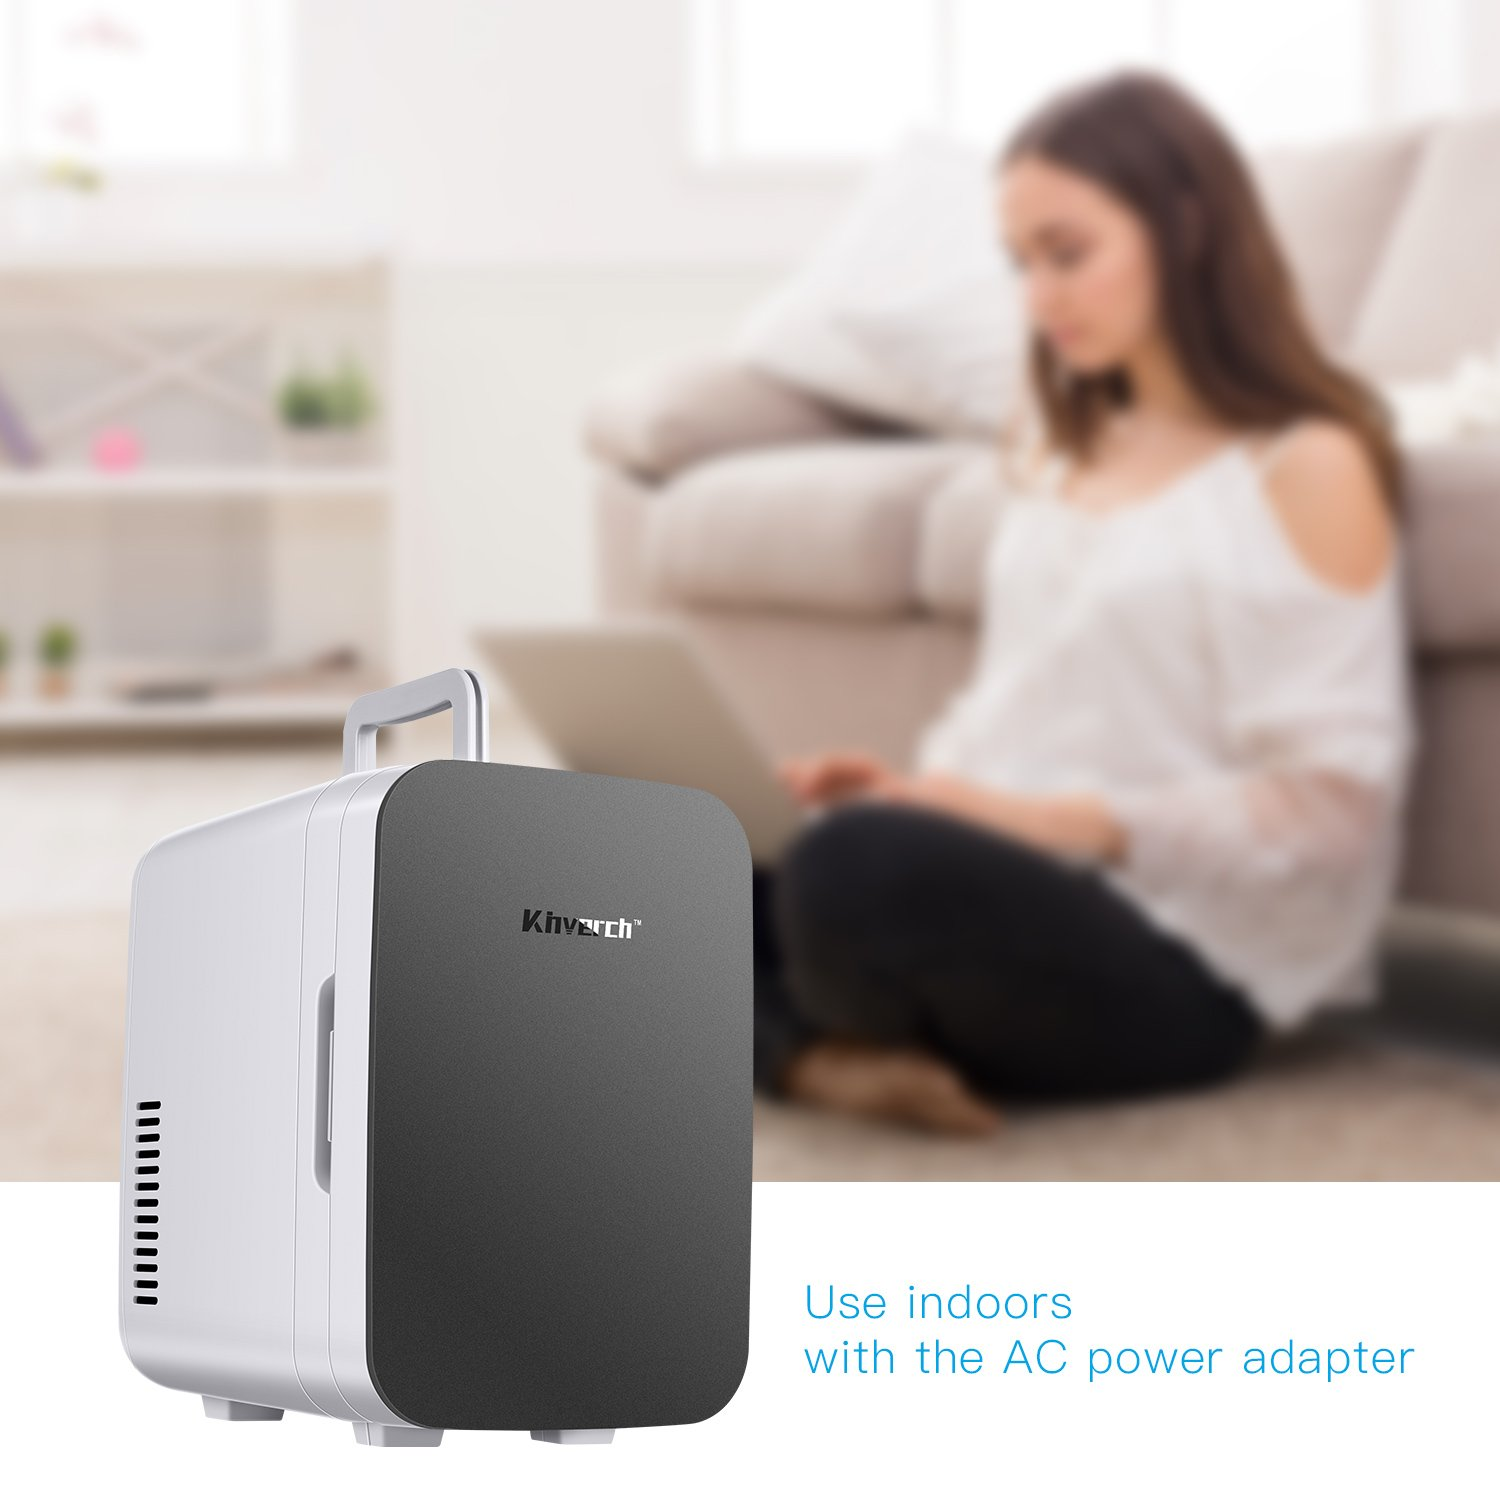 Kinverch Mini Fridge Electric Cooler and Warmer (6 Liter / 6 Can Plus) :110v AC / 12V DC Portable Thermoelectric System,,For Car /Home /Kichen/Junket/Outdoor for frinds / parents/yourself (Silver) by Kinverch (Image #6)